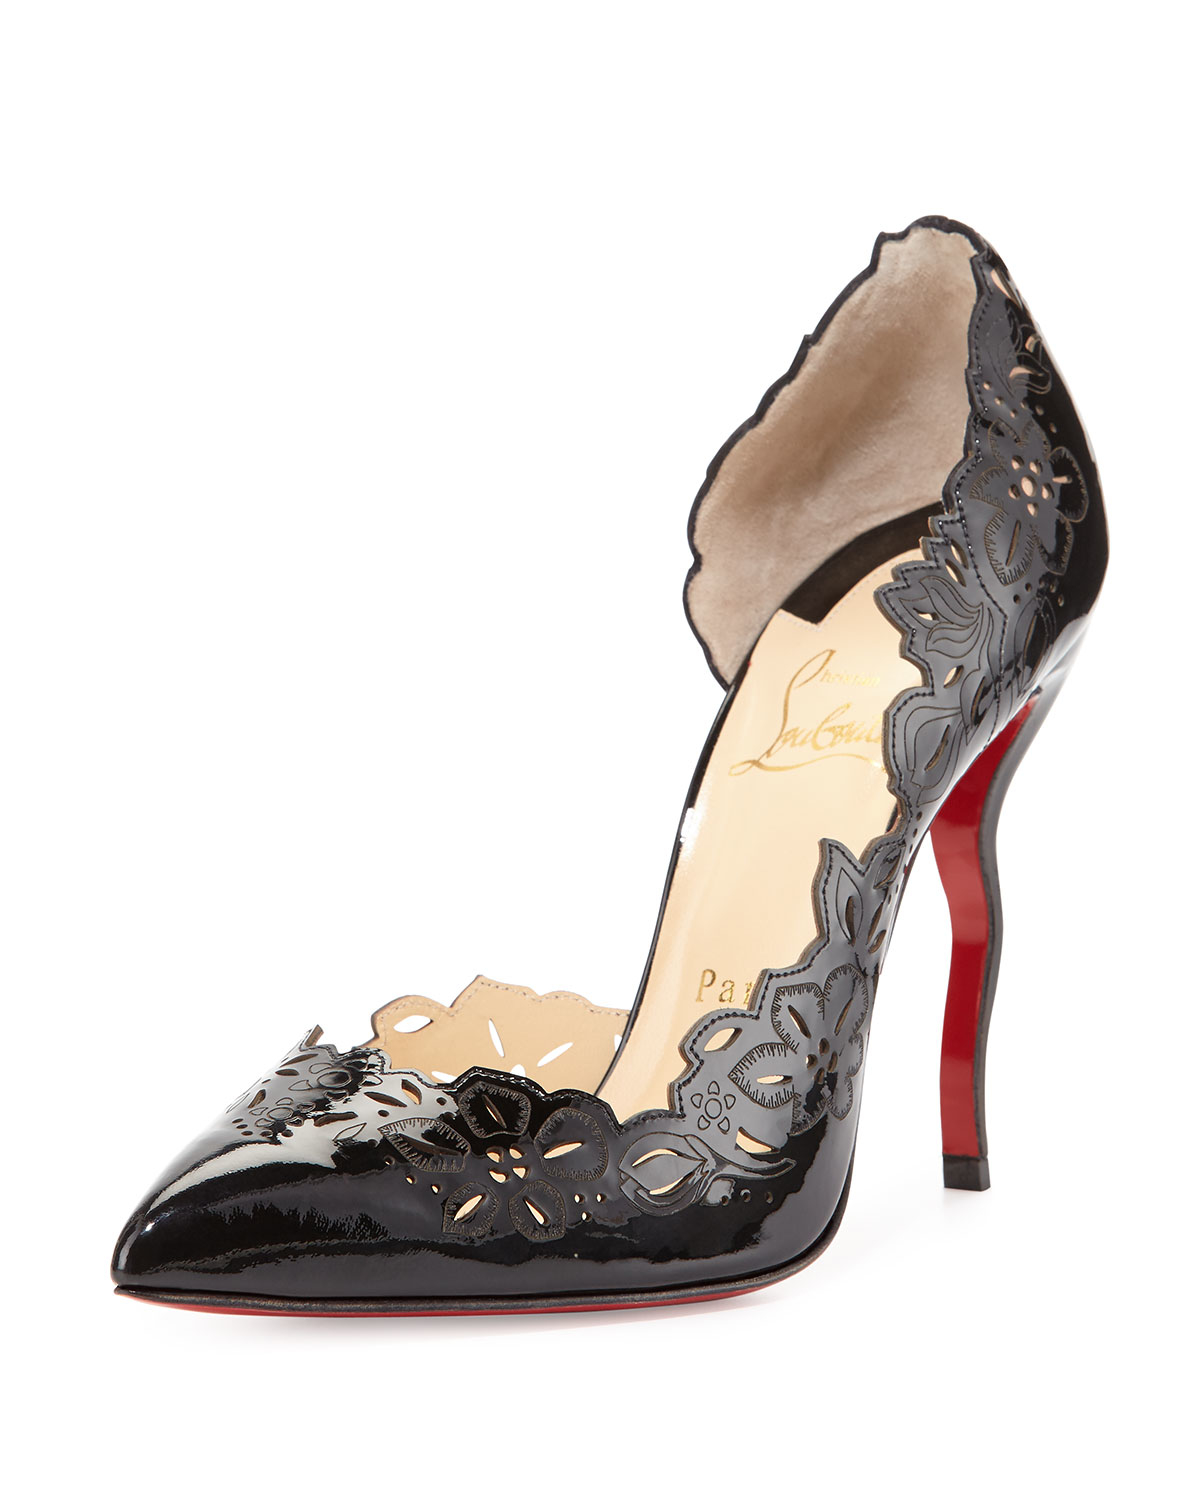 Christian louboutin Beloved Laser-Cut Patent Red Sole Pump ...